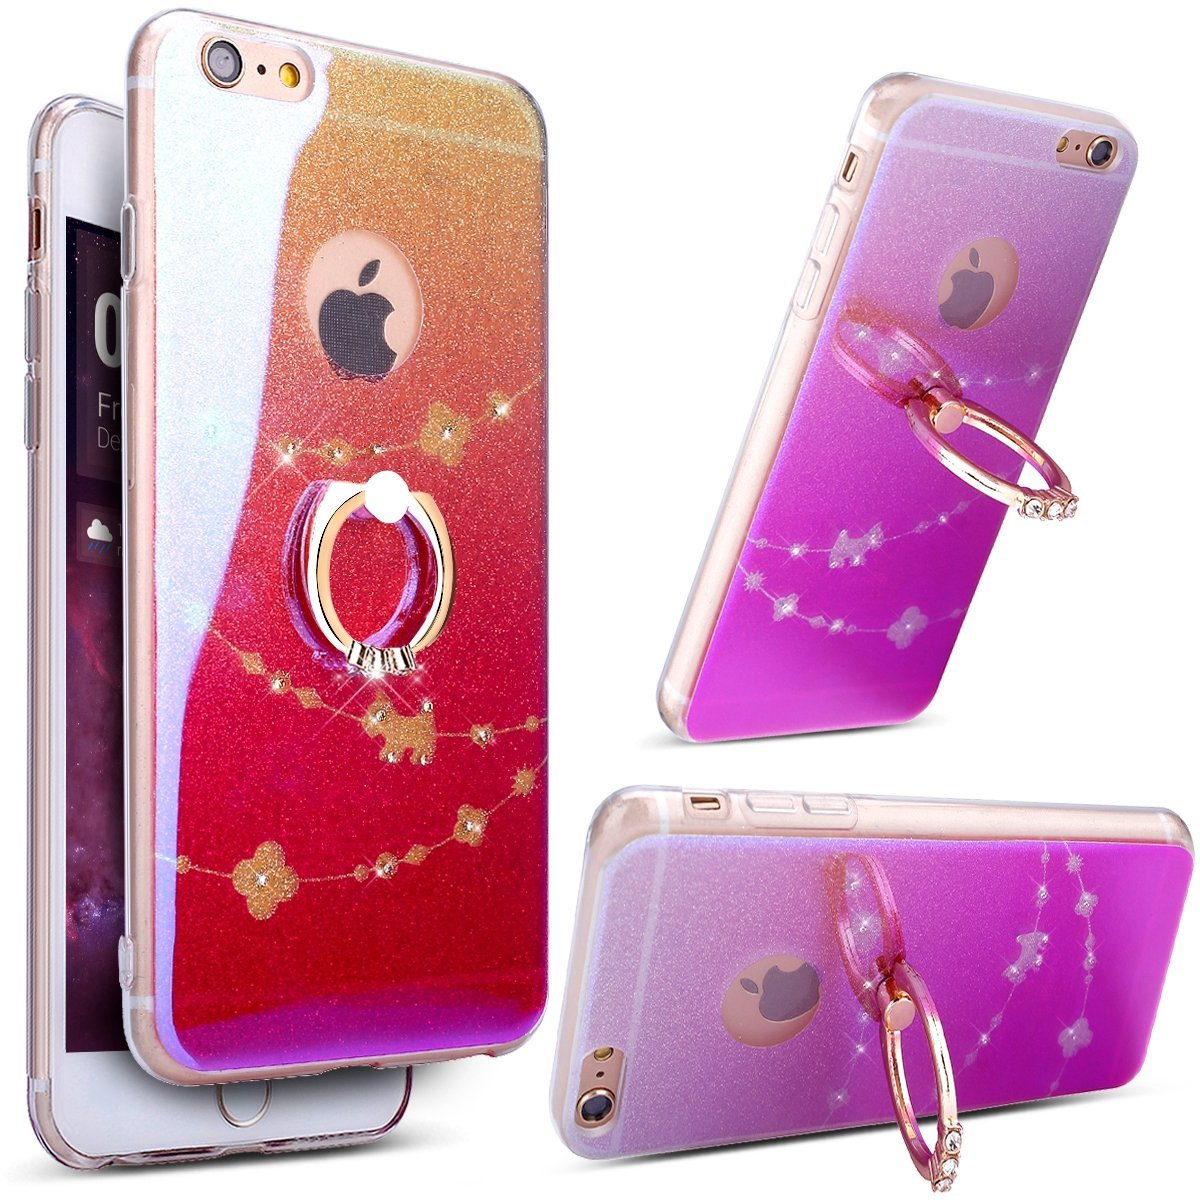 Buy iPhone 6 Plus Gradient Rainbow Bling Glitter Screen Protection ...